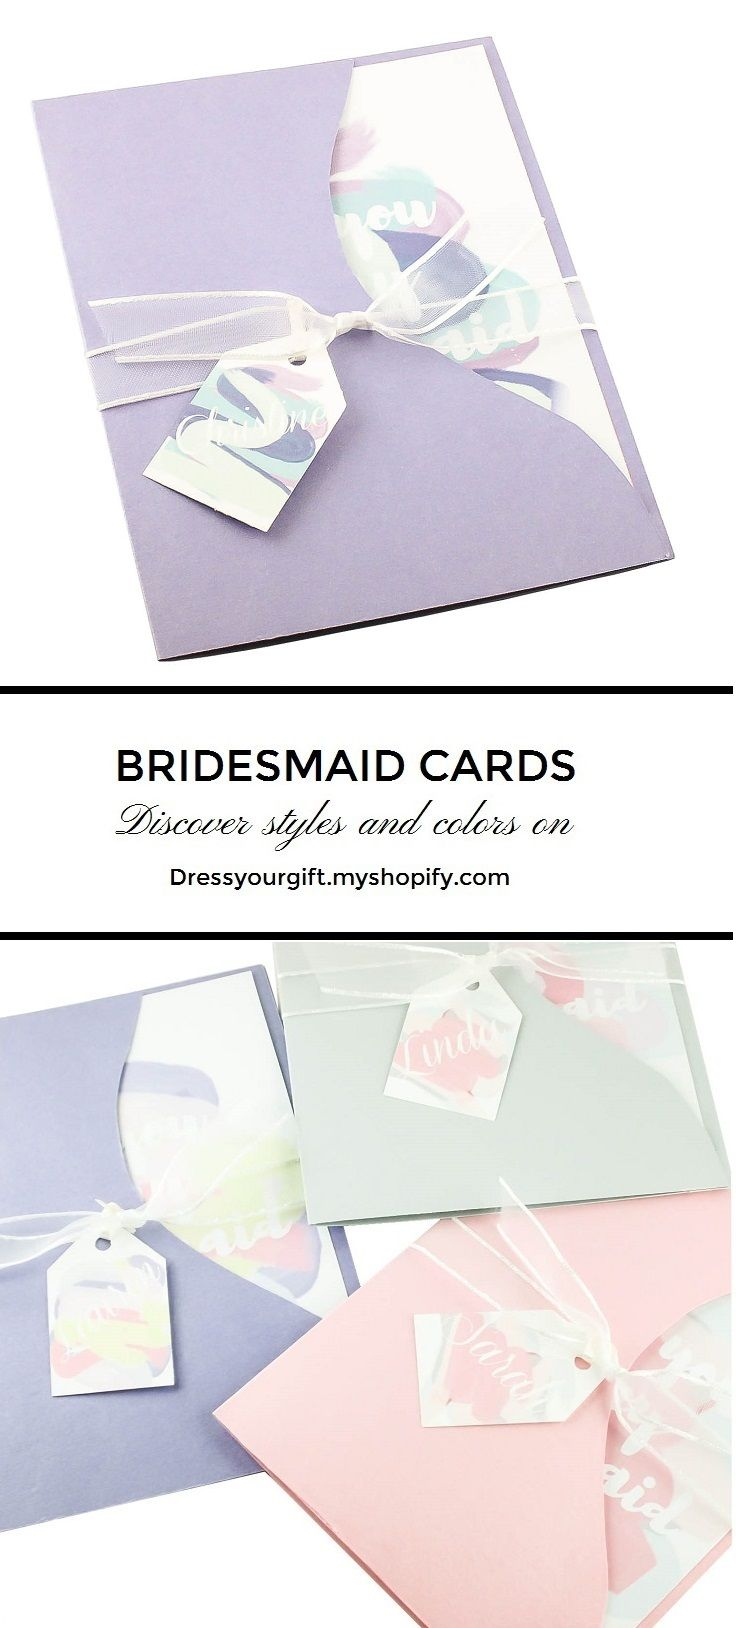 Discover our purple Bridal Shower invitations, Bridesmaid cards, Maid of Honor invitation #bridalshowercard #demoiselledhonneur #damadehonor #trauzeugin #brautjungfern purple Bridal Shower invites Dama de honor invitacion, Demoiselle honneur violet carte, Brautjungfer fragen, Trauzeugin fragen